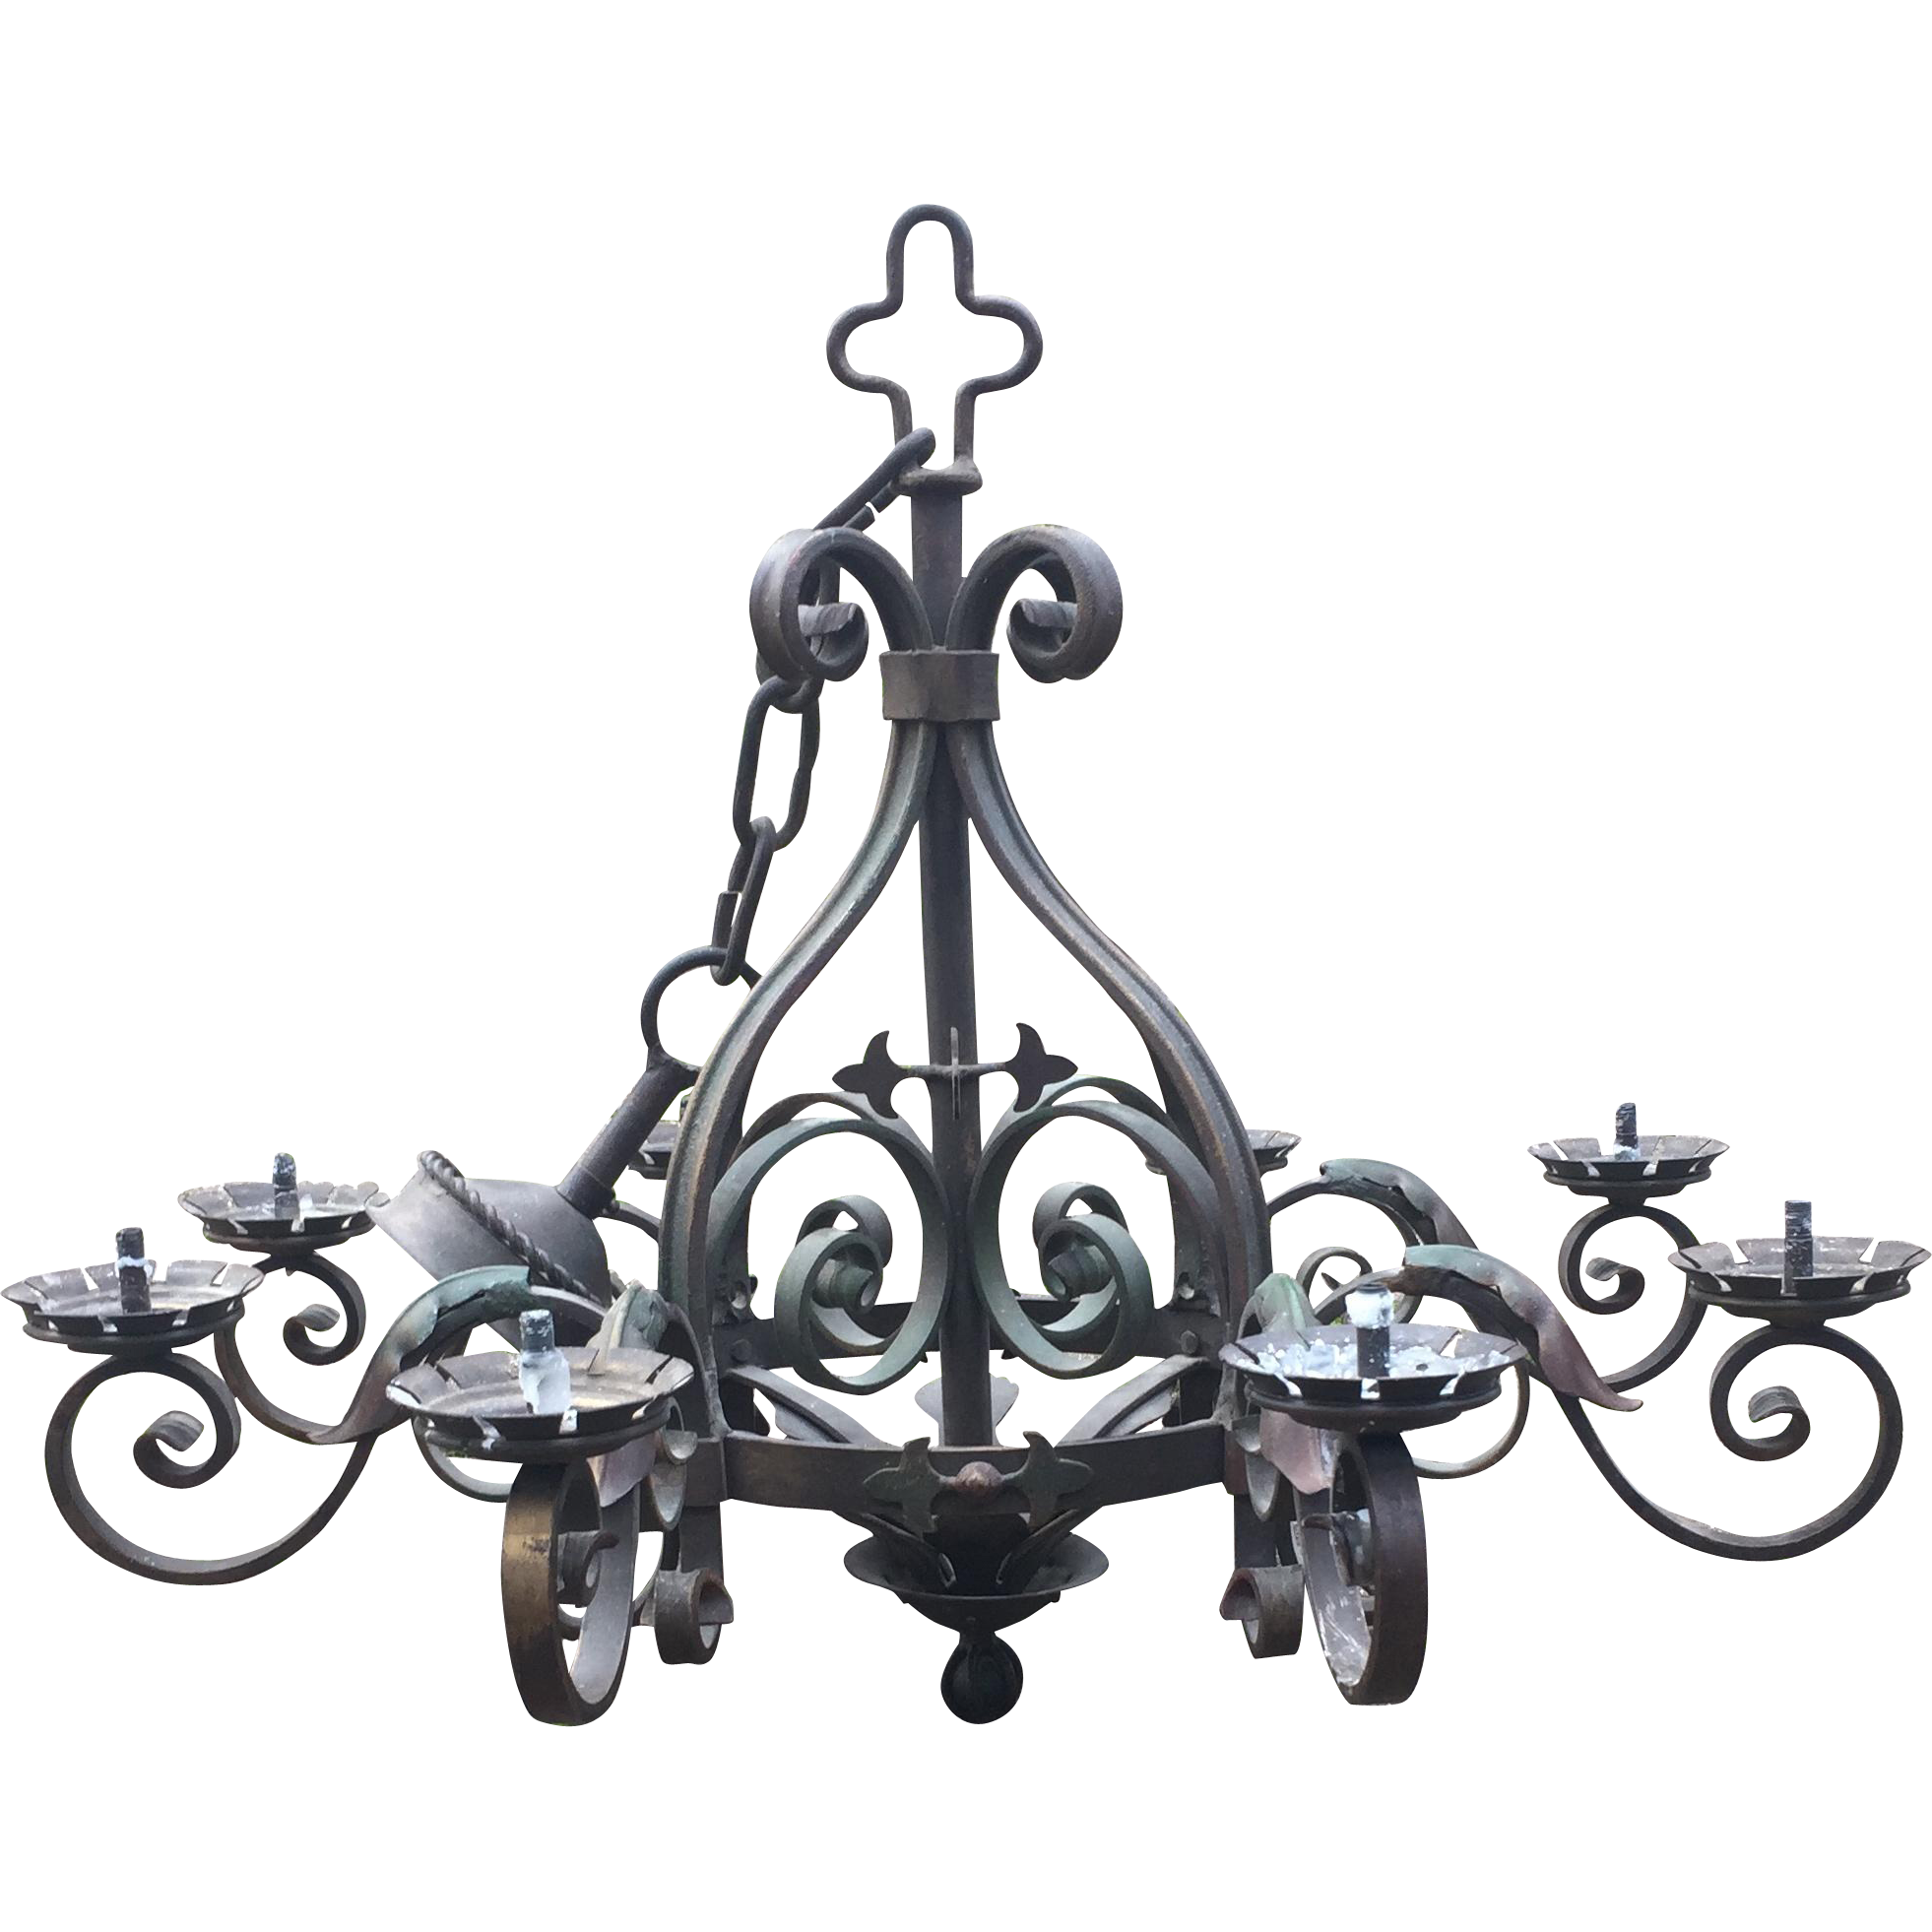 french rustic wrought iron art 8 light castle chandelier from europeantiqueshop on ruby lane. Black Bedroom Furniture Sets. Home Design Ideas